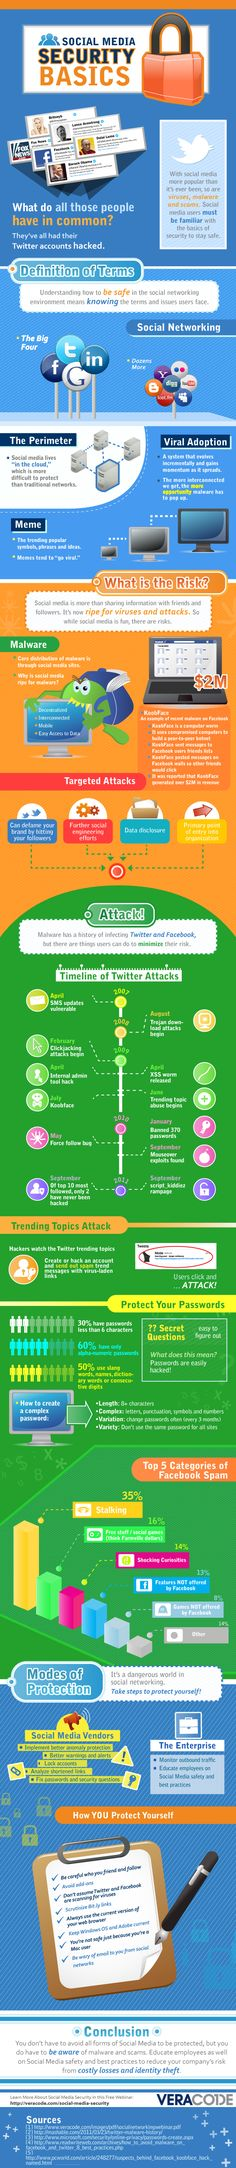 Mouhahahahaha (evil laugh). Fear the Social Media or get secure ? here are a few tips to social media security basics